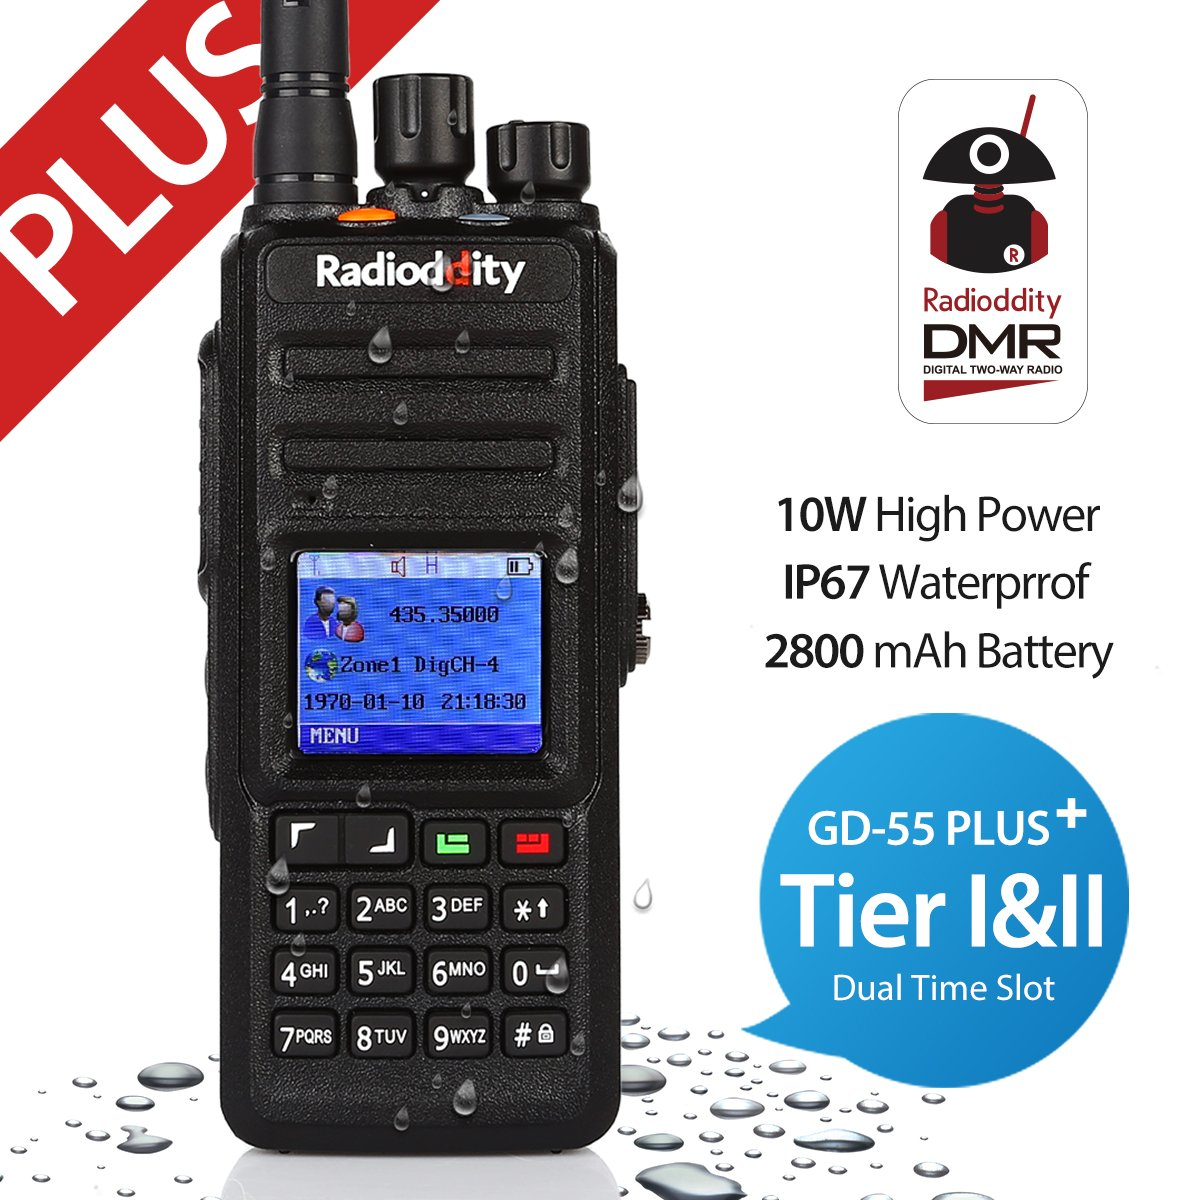 Radioddity * GD-55 Plus * 10W UHF DMR Digital Two Way Radio É metteur ré cepteur IP67 waterproof, Dual Time Slot, with Programming Cable and 2 Antennas, Compatible with Mototrbo TierⅠ&Ⅱ Compatible with Mototrbo TierⅠ &Ⅱ